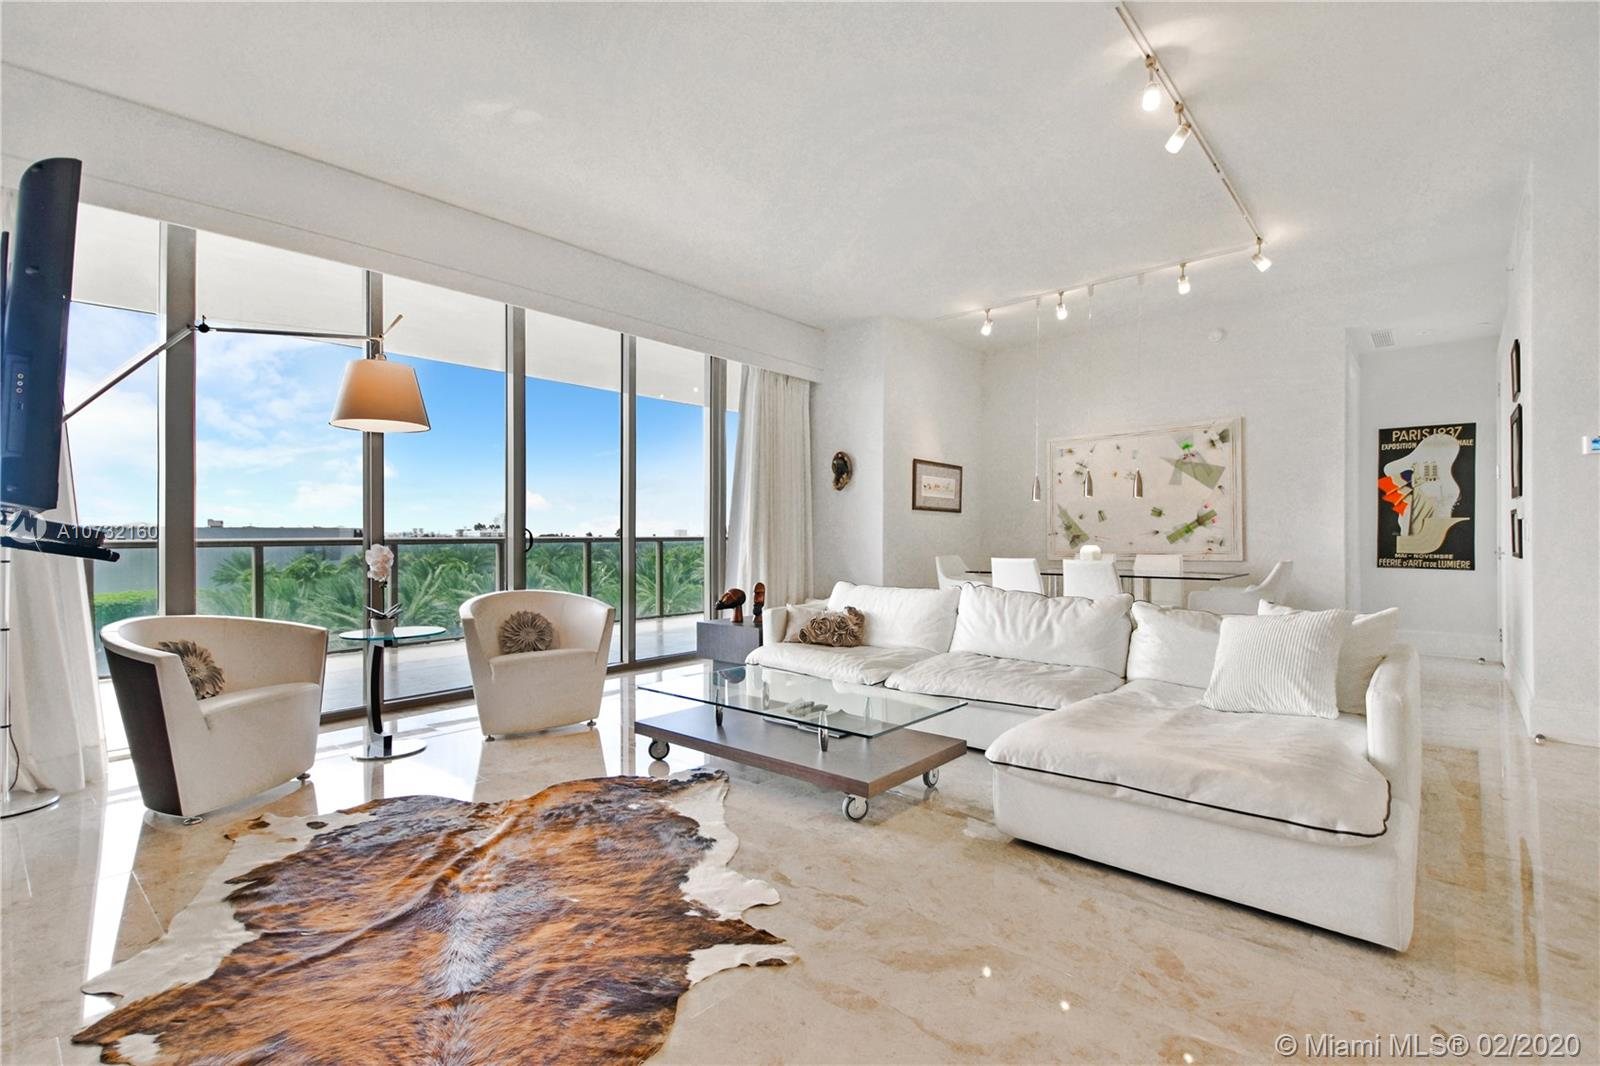 9705 Collins Ave #405N, Bal Harbour FL 33154